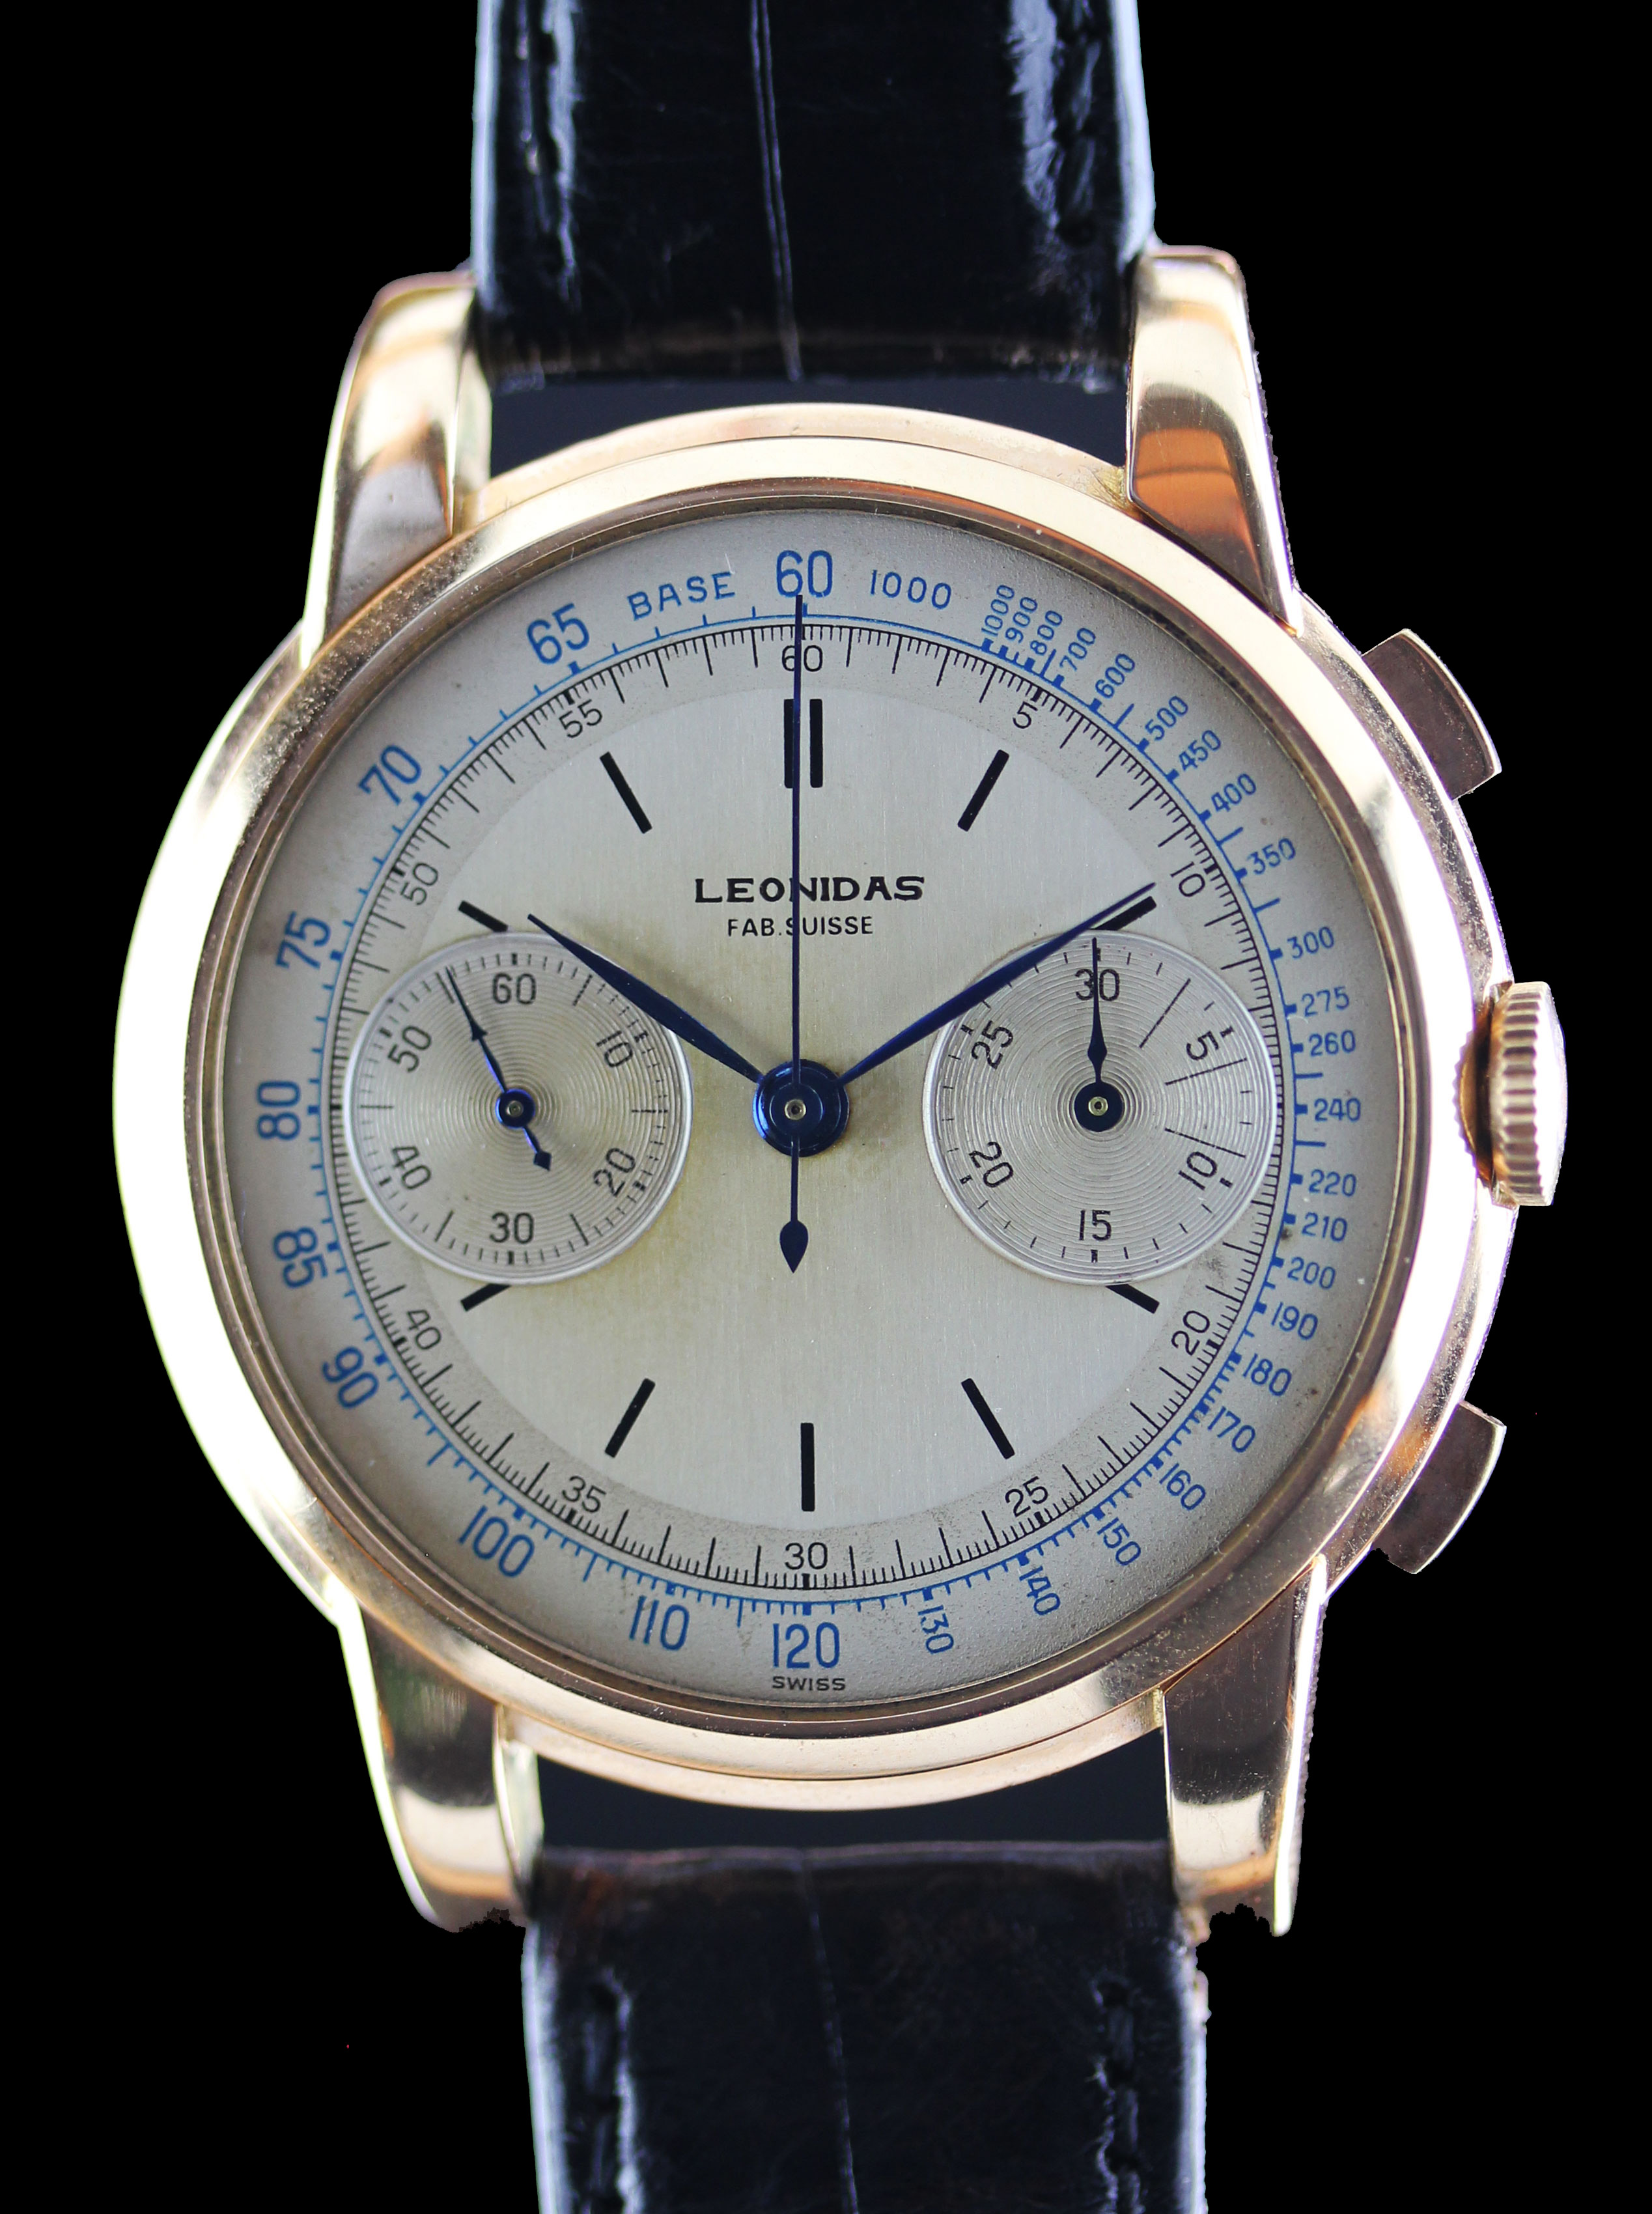 Jumbo chronograph by LEONIDAS in pink gold